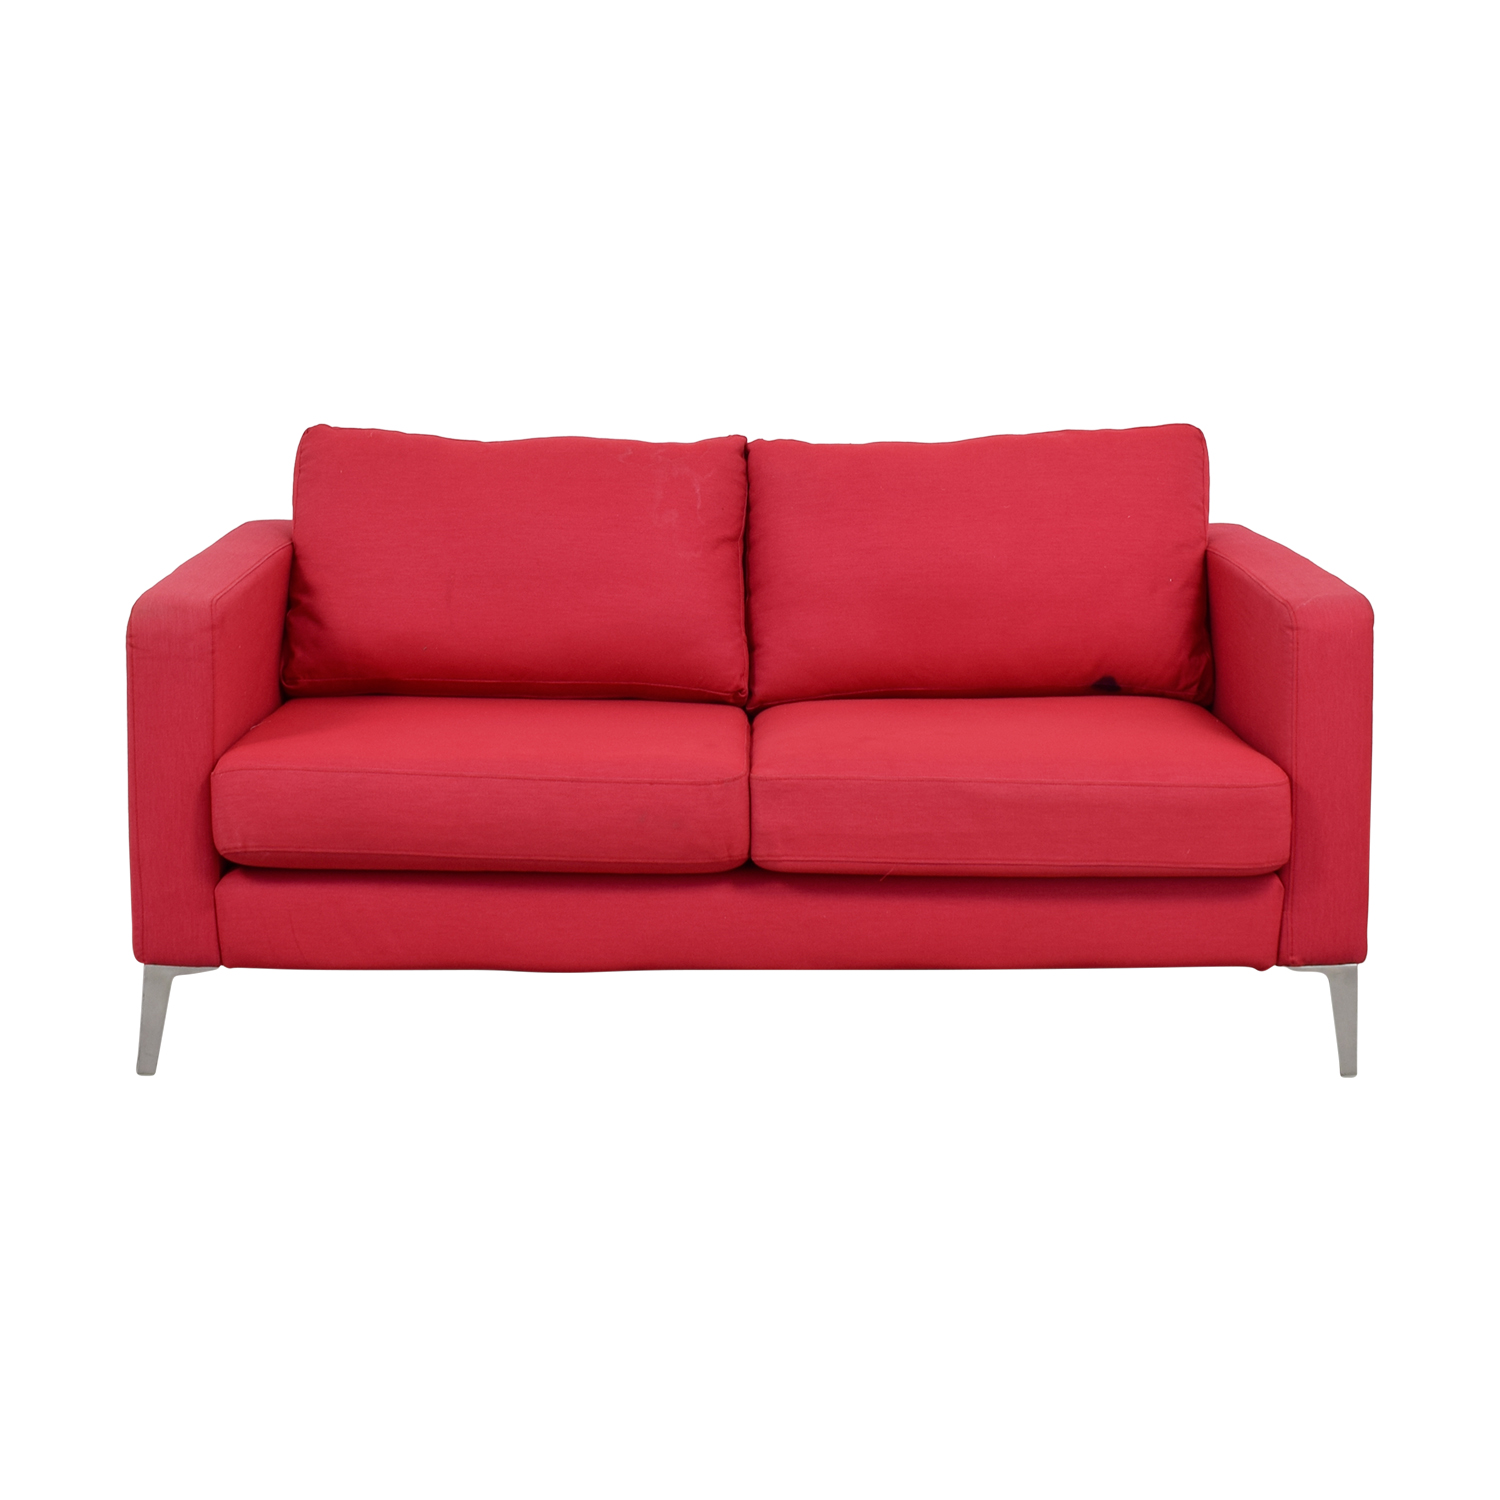 IKEA IKEA Red Two-Cushion Love Seat Sofas